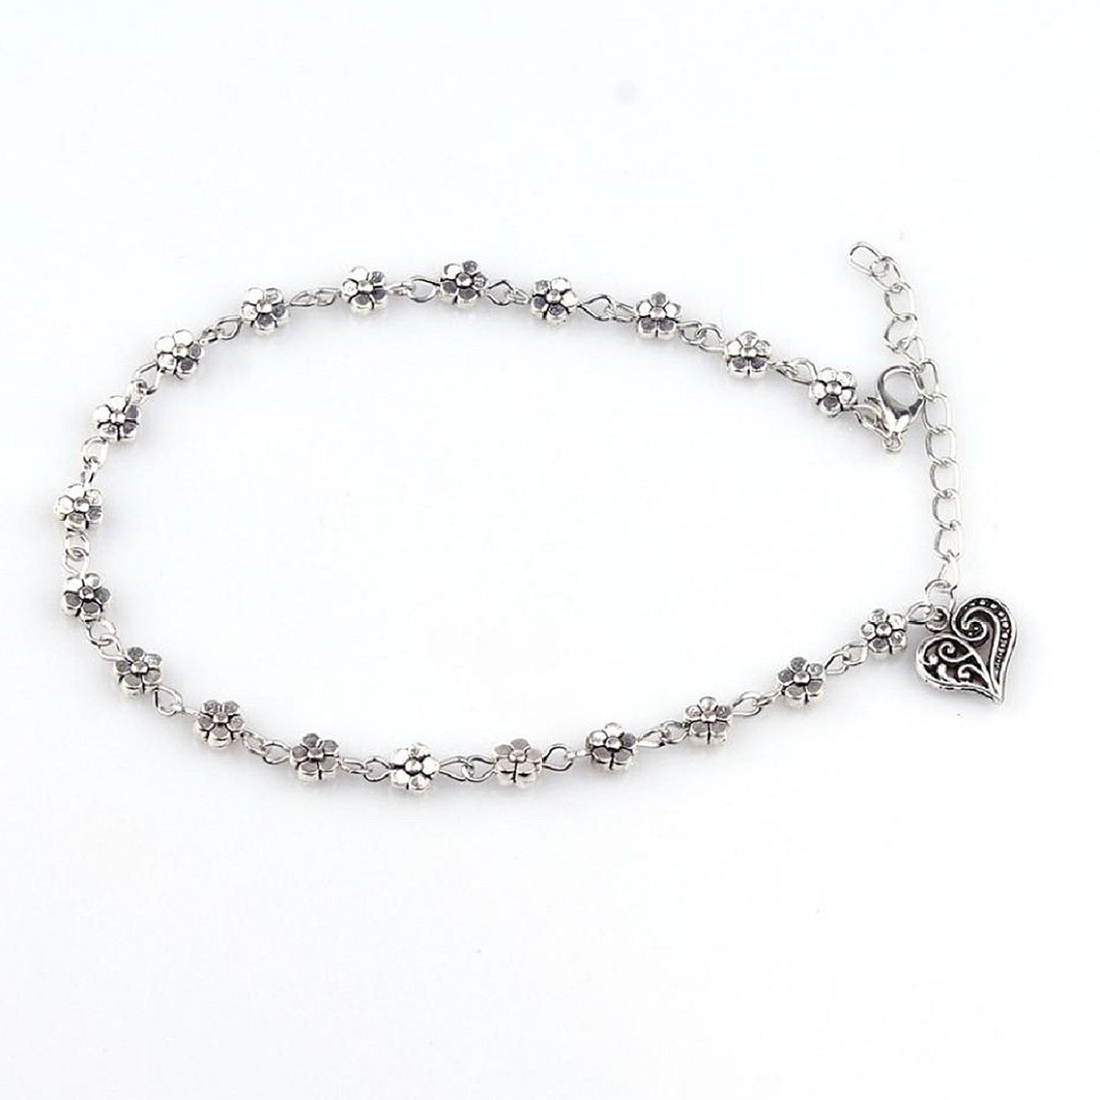 best buy bracelet anklet for real accessorize anklets india online reviews bracelets silver prices women ankle